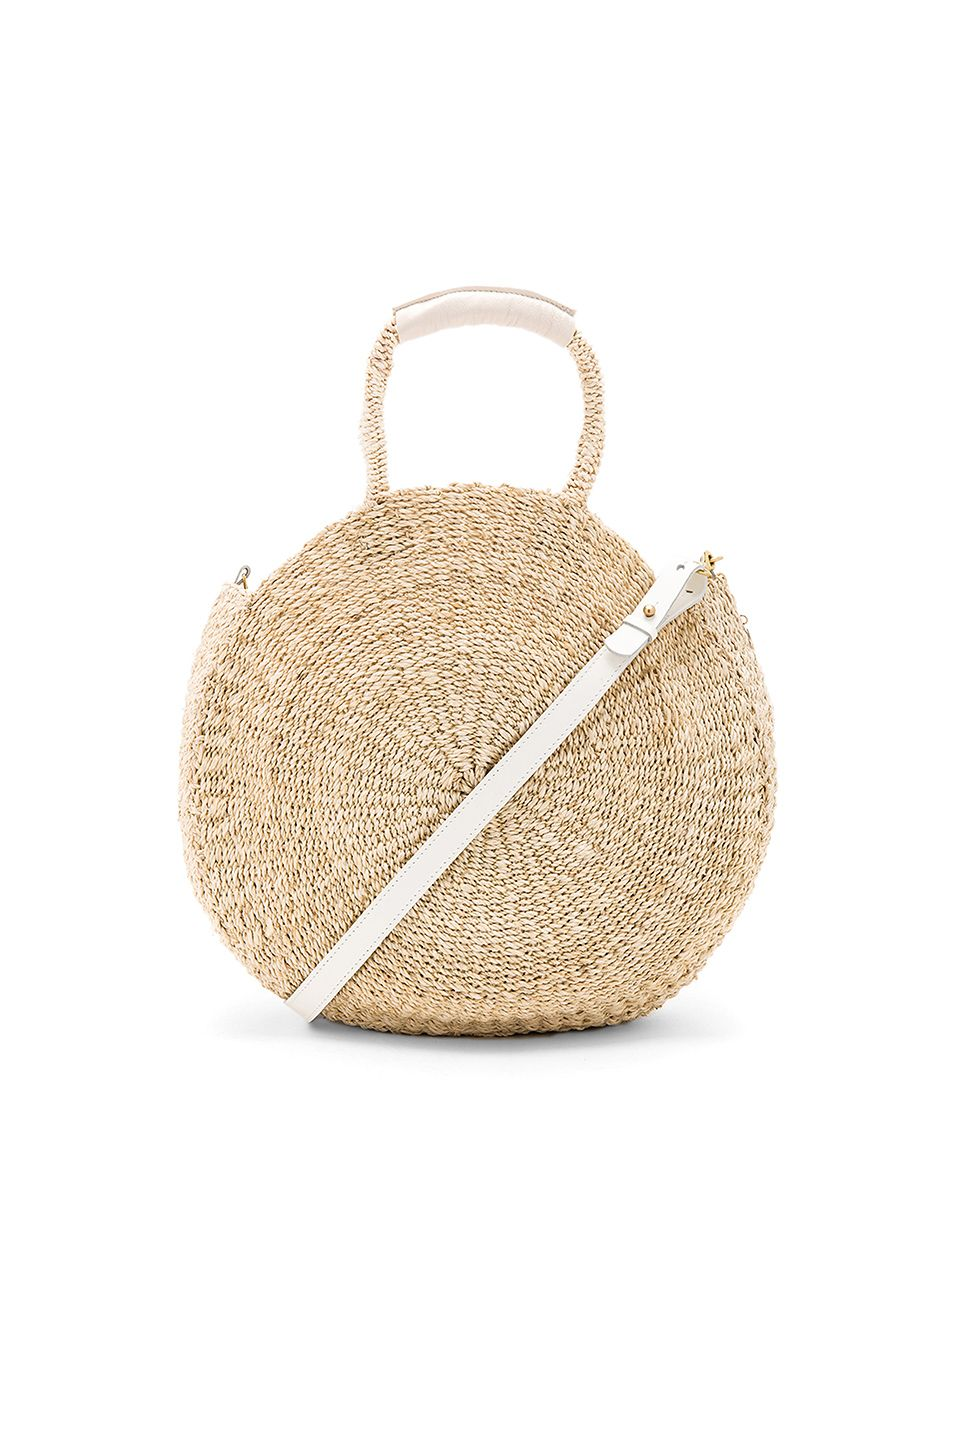 fbb1751289a9 #REVOLVE What's Trending In Fashion, Woven Bags, Straw Tote, 40s Fashion,